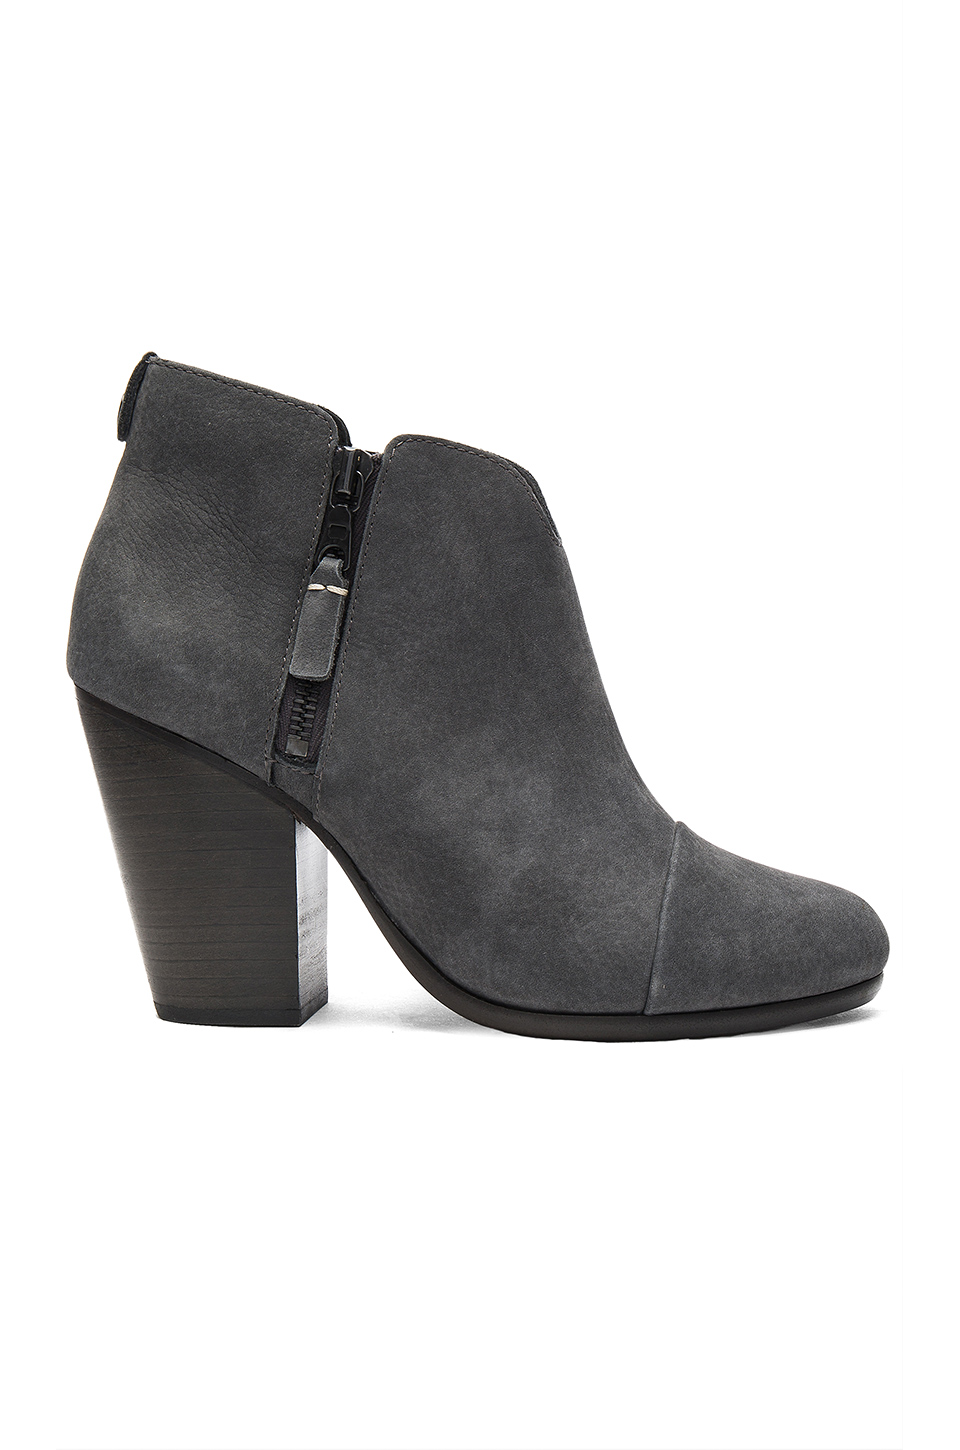 Rag & Bone Margot Nubuck Leather Ankle Boots In Charcoal-grey